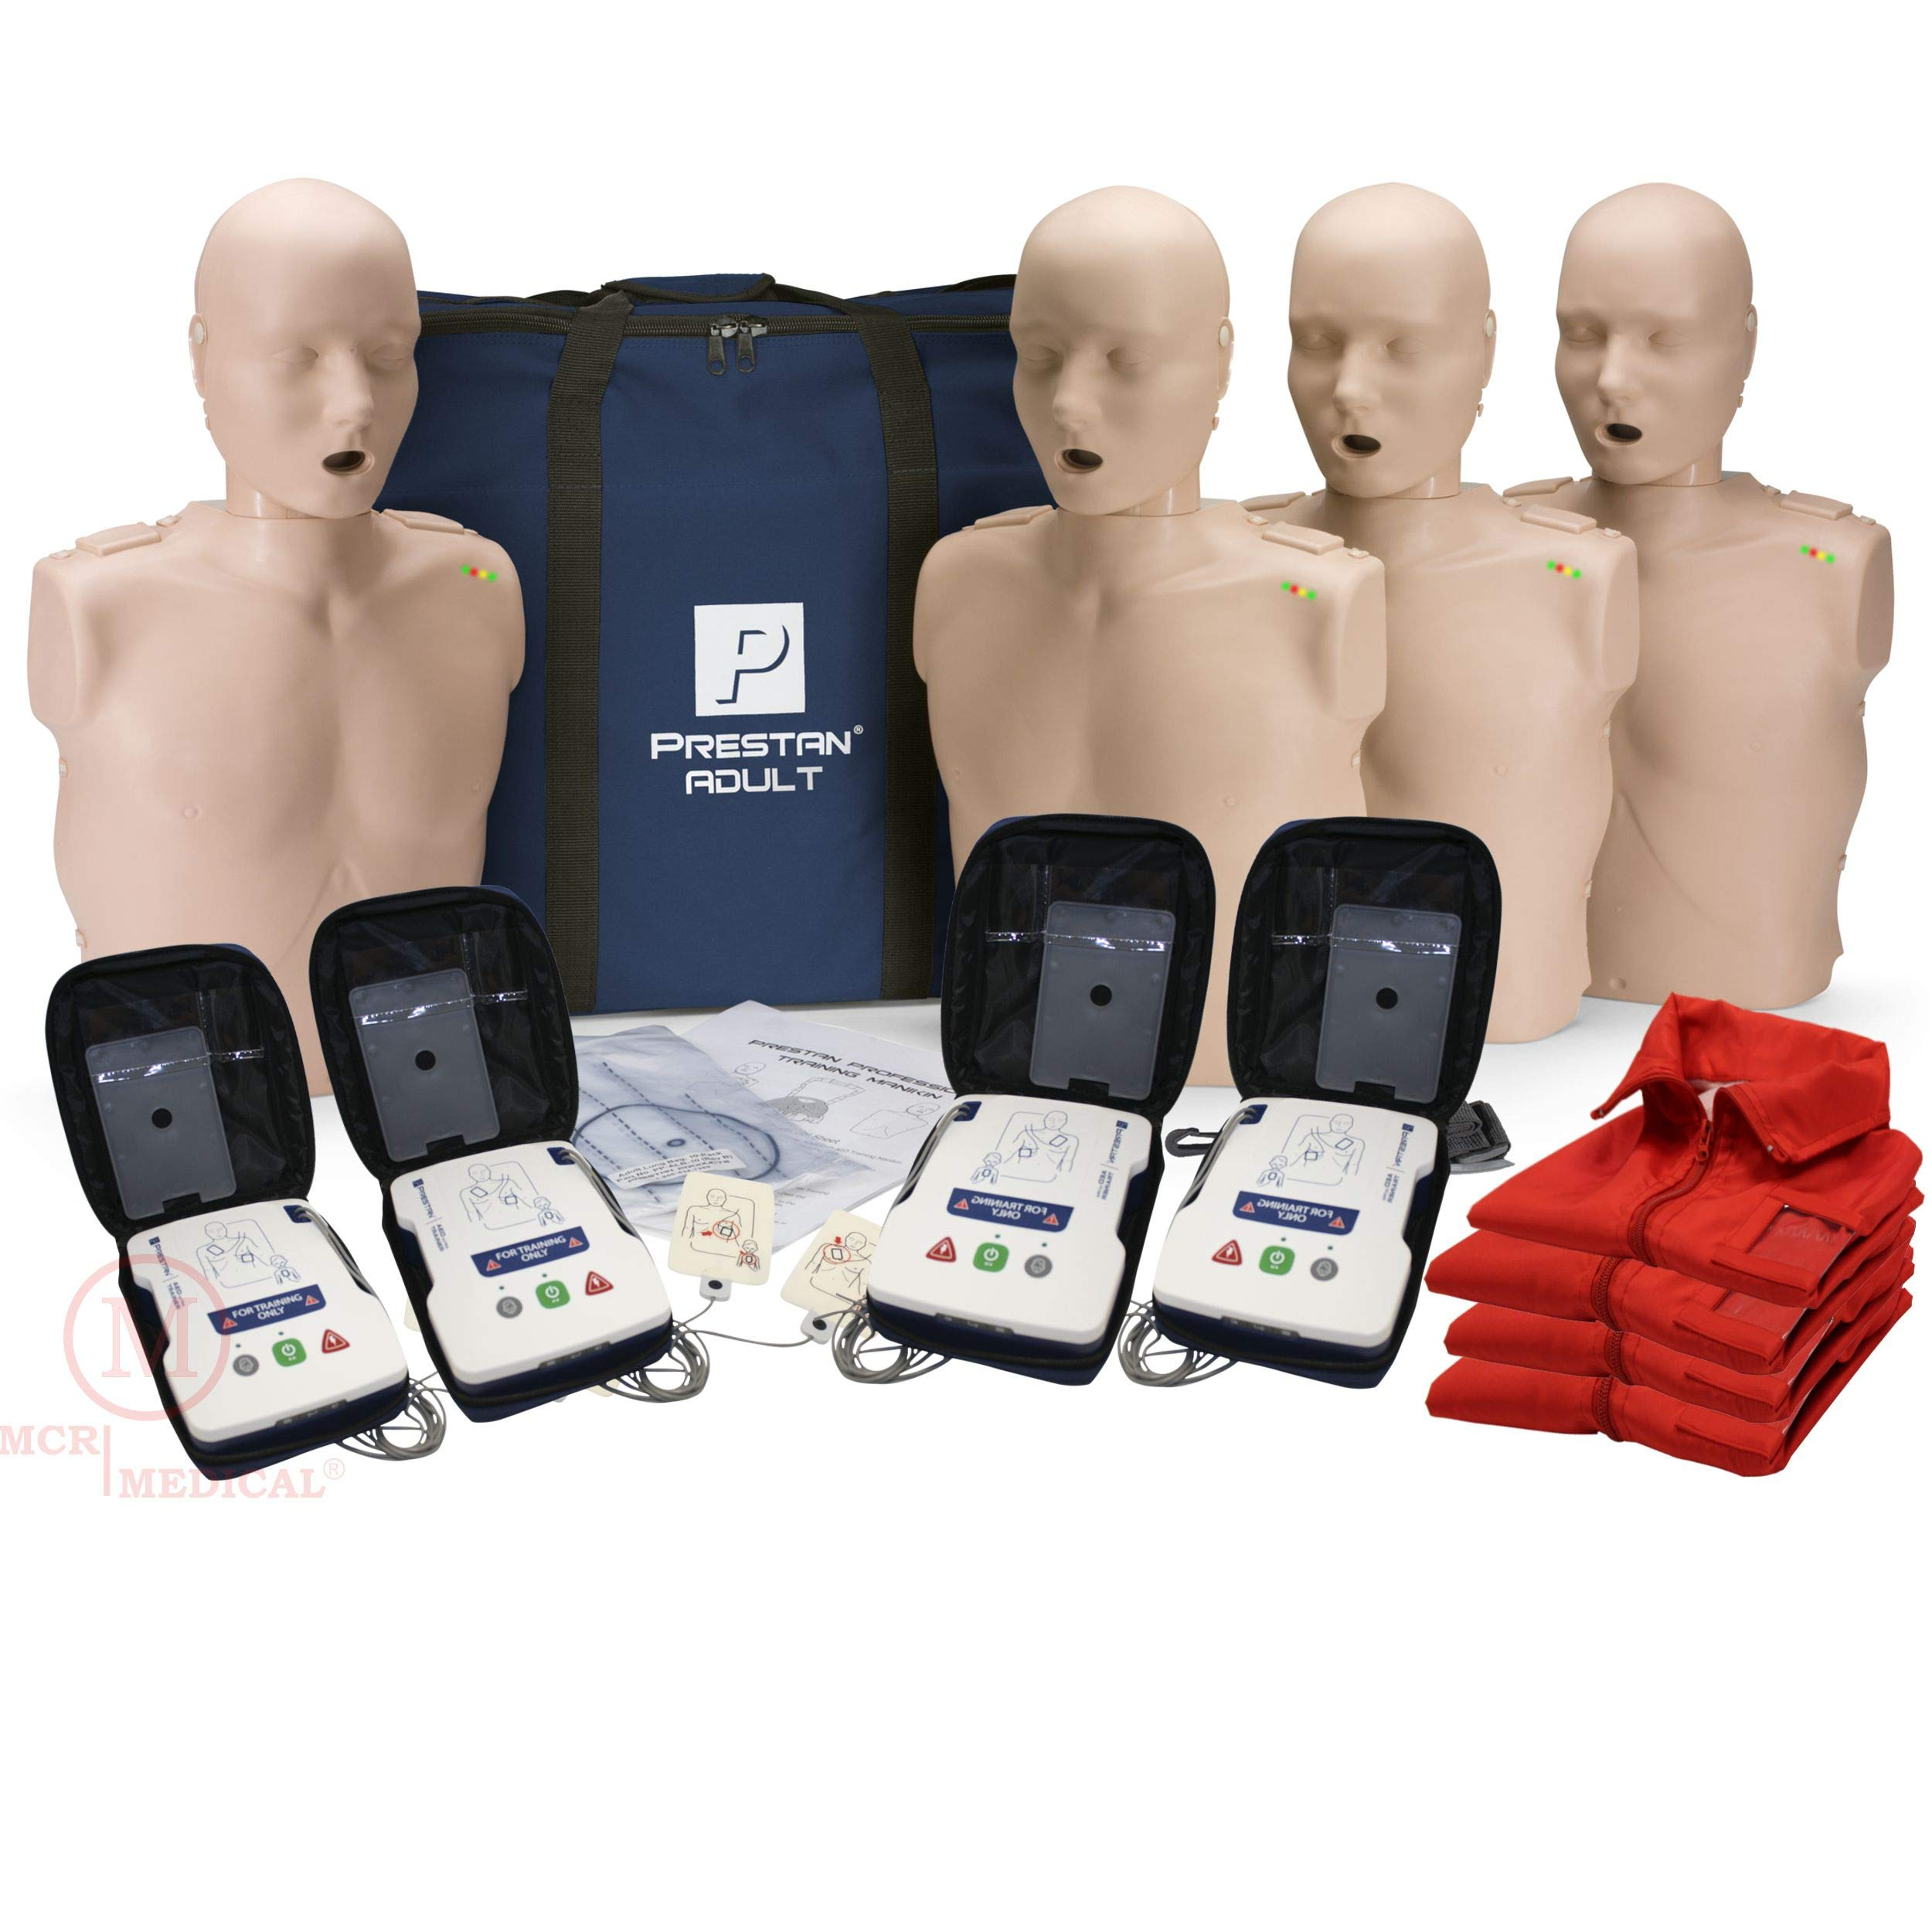 CPR Adult Manikin 4-Pack w. Feedback, AED UltraTrainers, and MCR Accessories